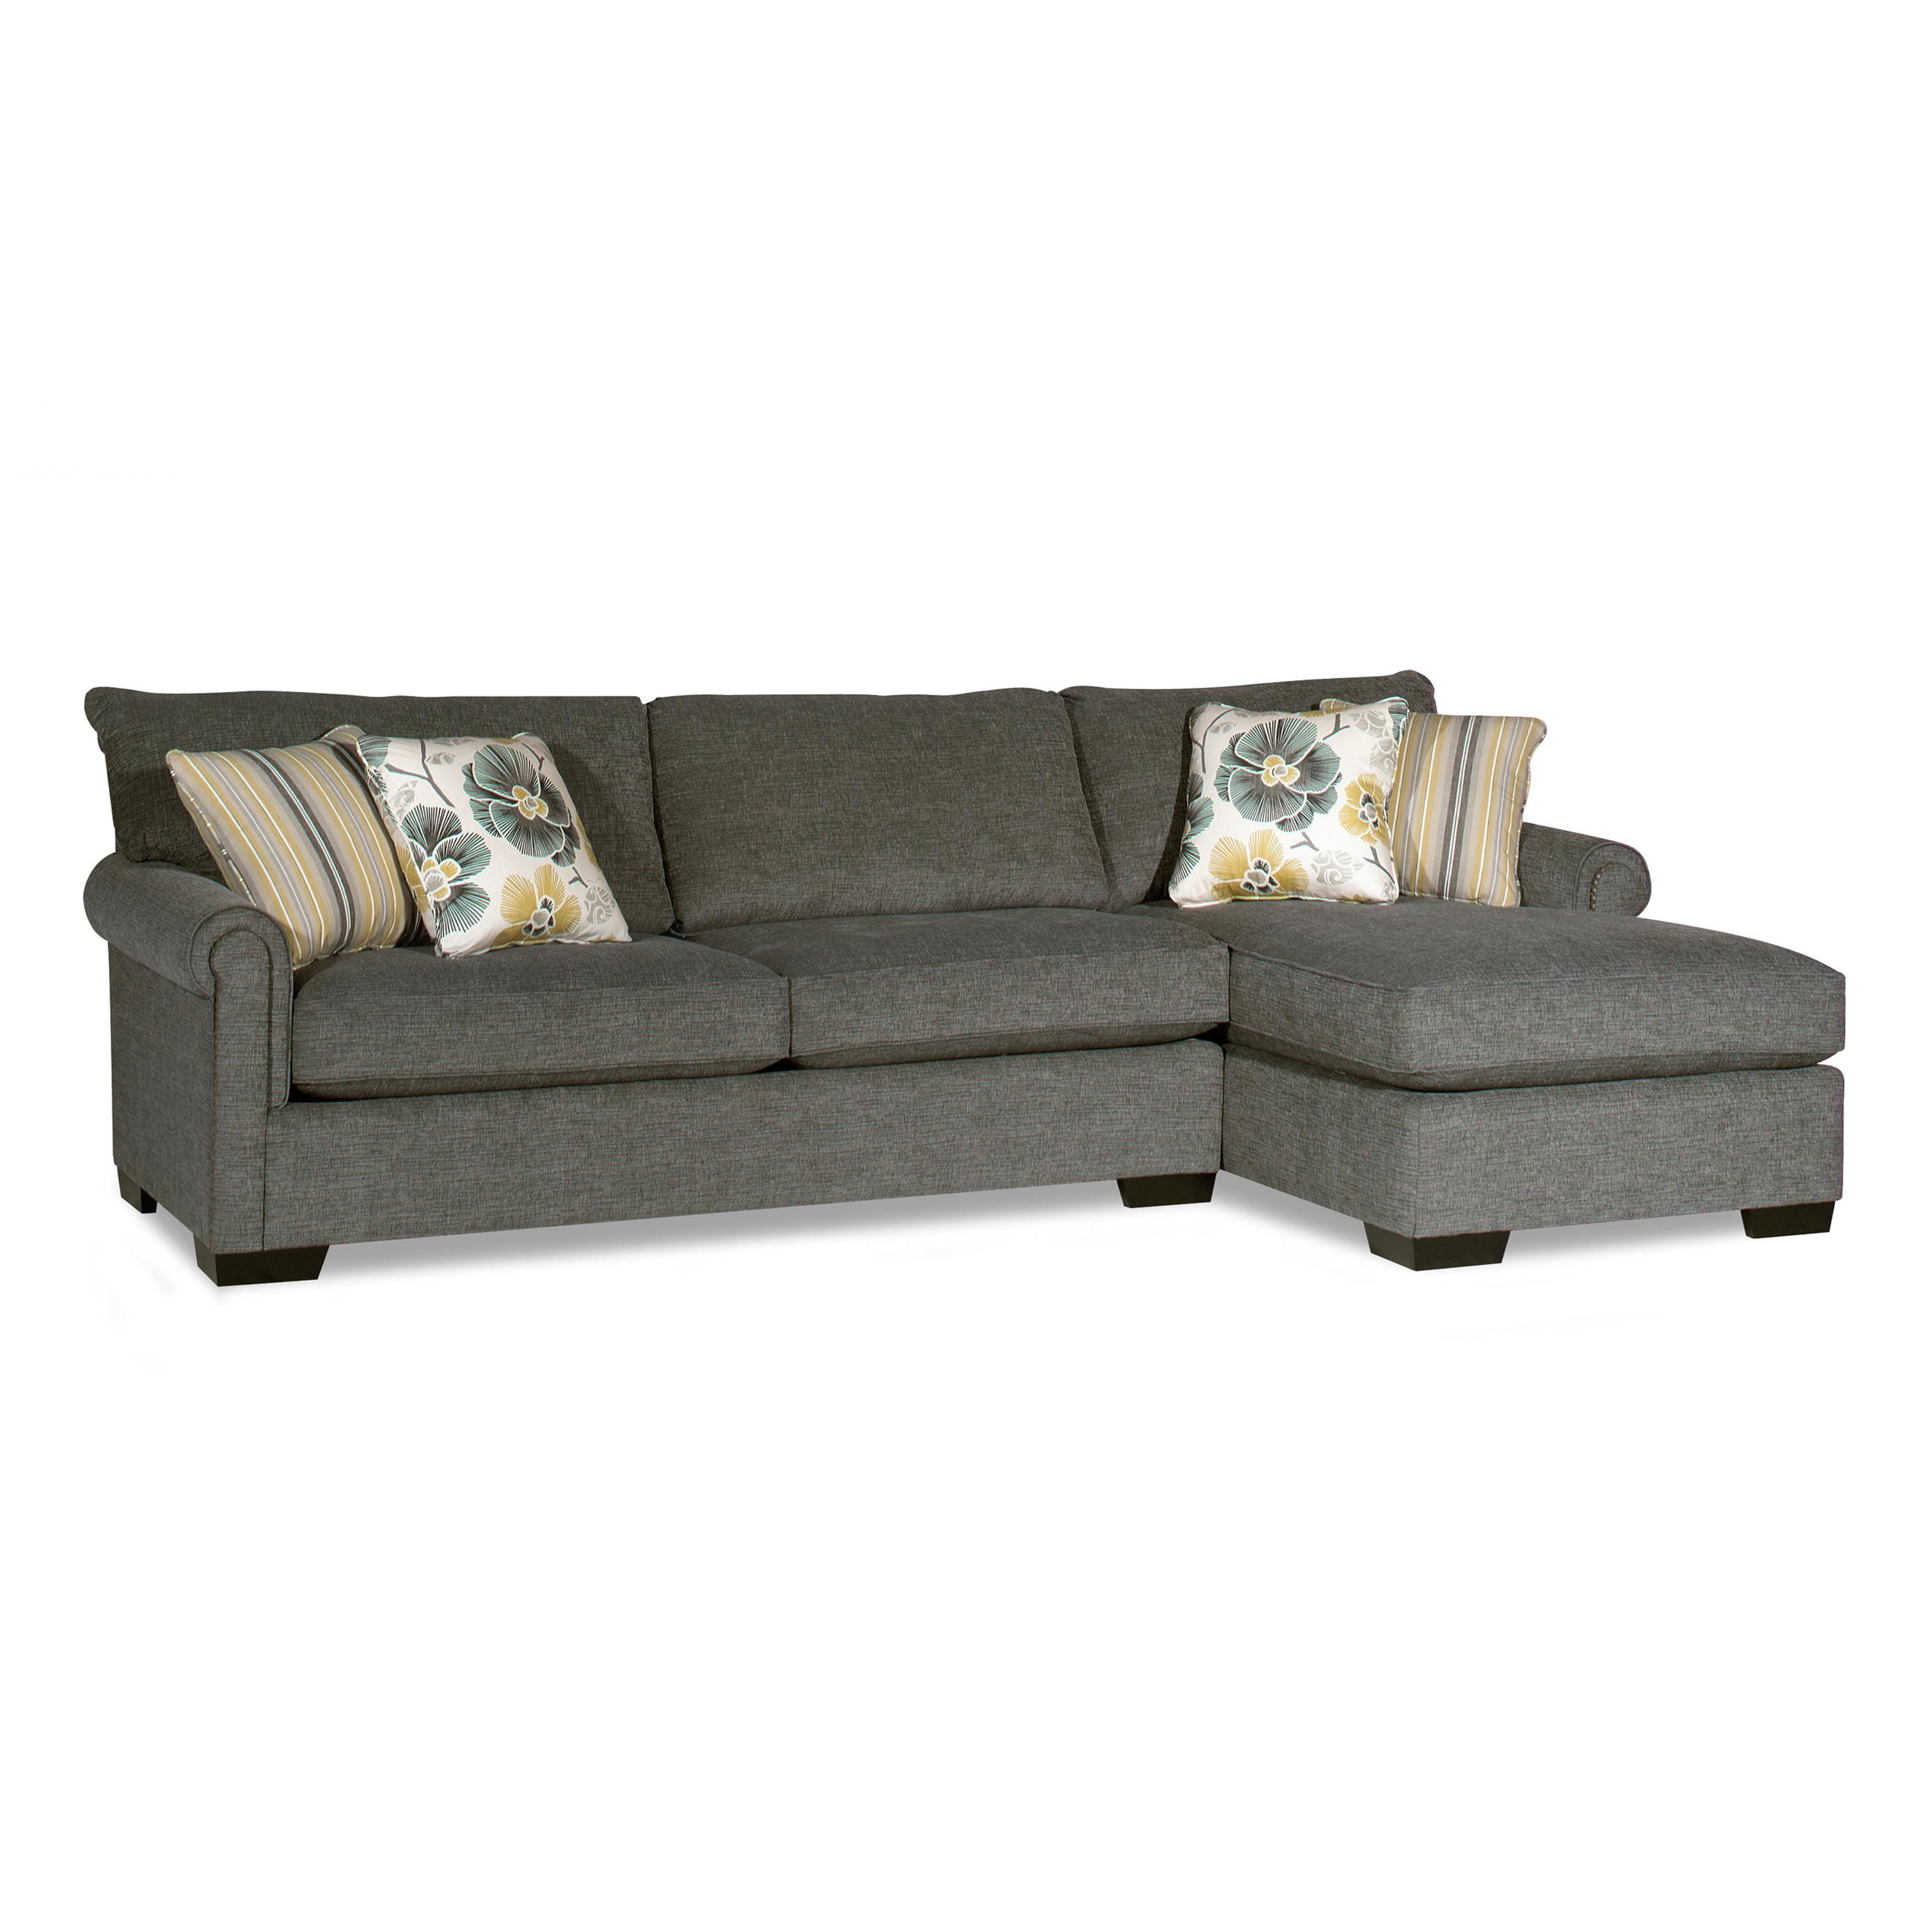 Transitional Sectional Sofa With Chaise And Nailhead Trim